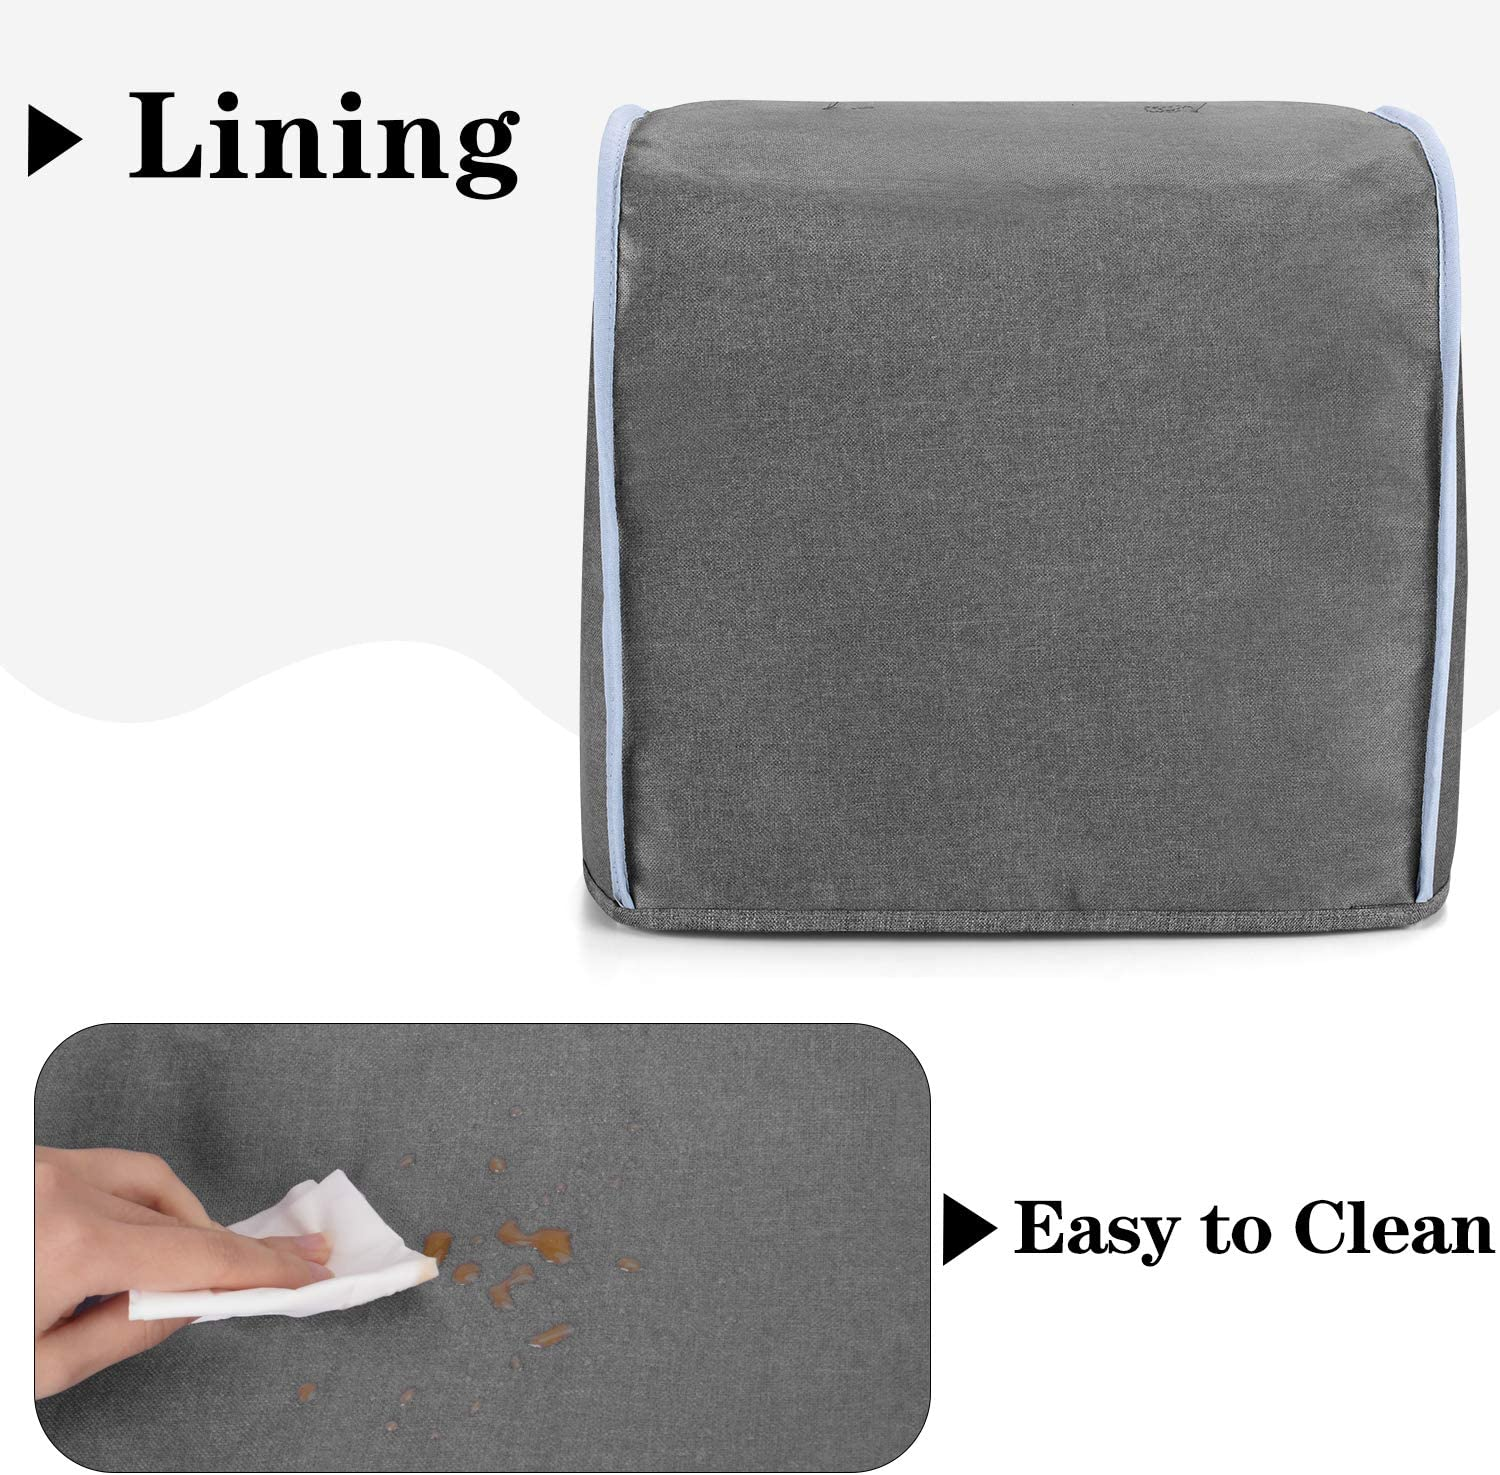 Overlock Machine Dust Cover for Most Standard Singer or Brother Serger Gray with Arrow Yarwo Serger Sewing Machine Cover with Top Handle and Pockets